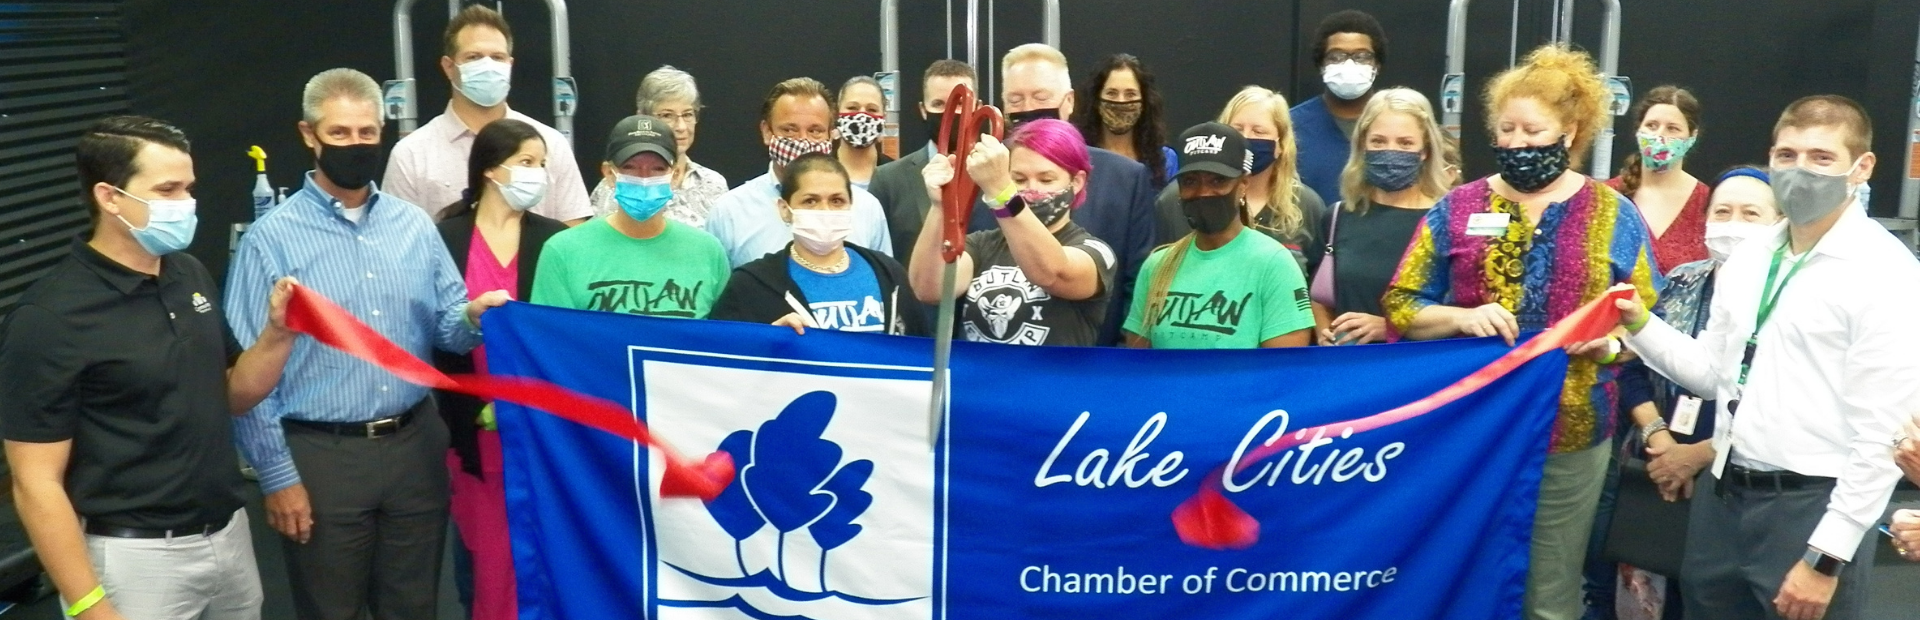 Lake Cities Chamber of Commerce | Ribbon Cutting | Outlaw FitCamp